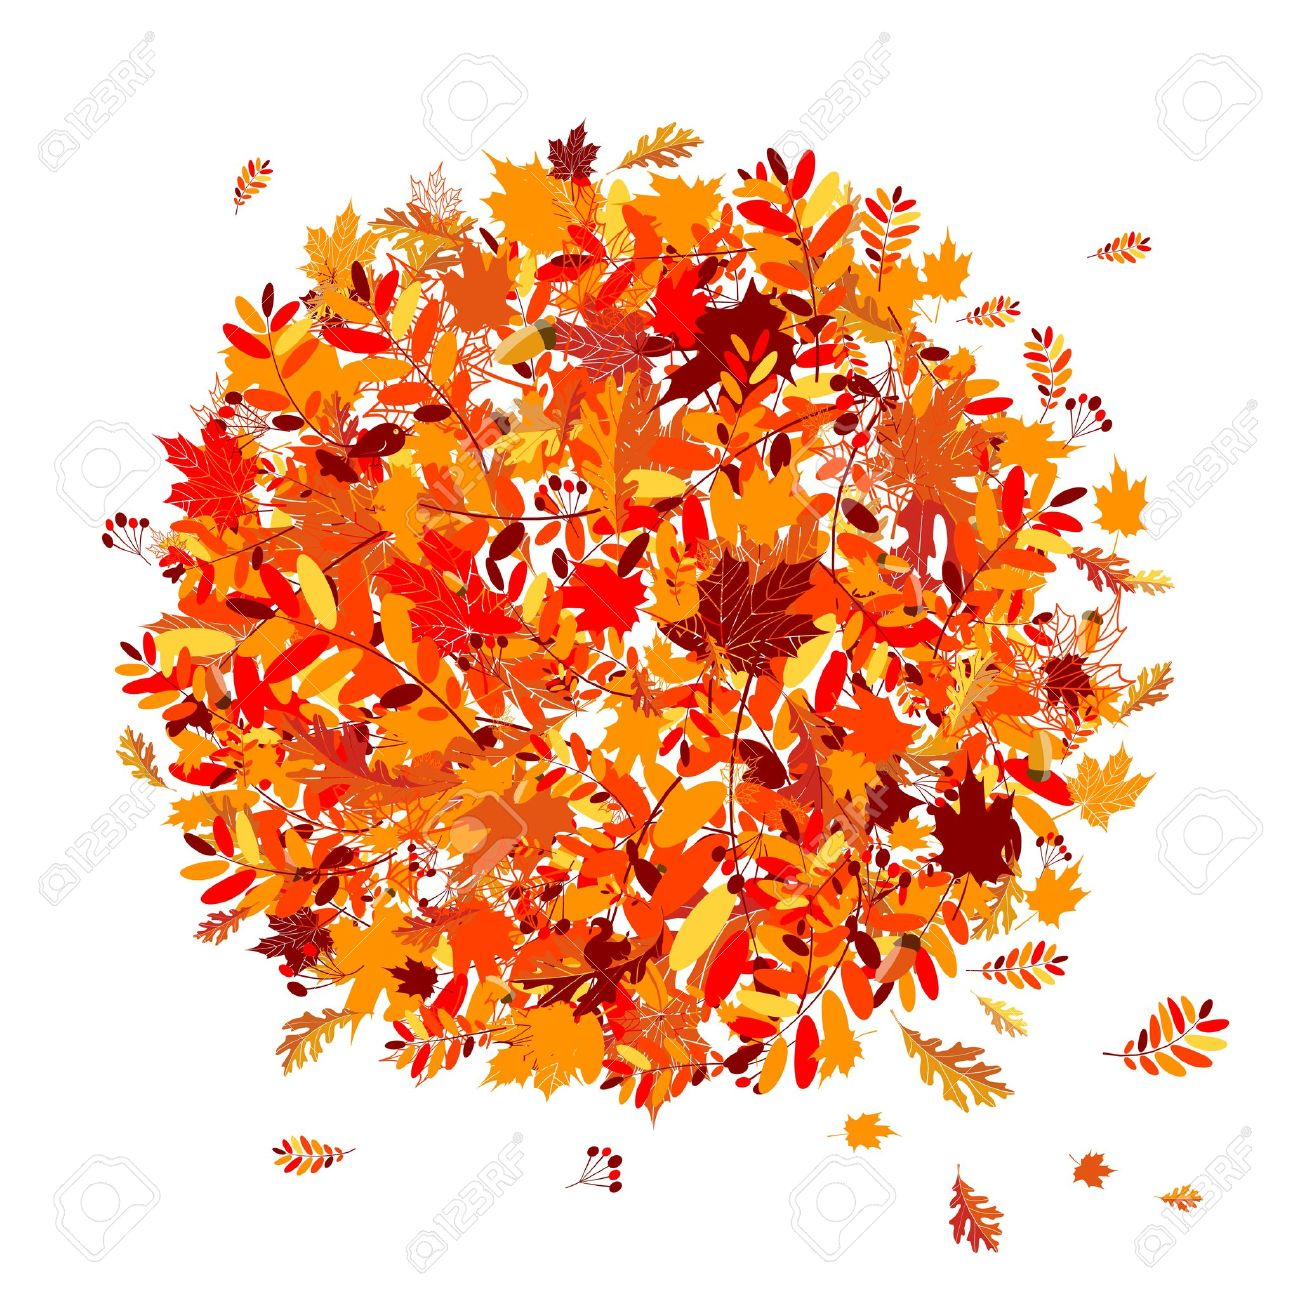 Autumn leaves background for your design Stock Vector - 7770185